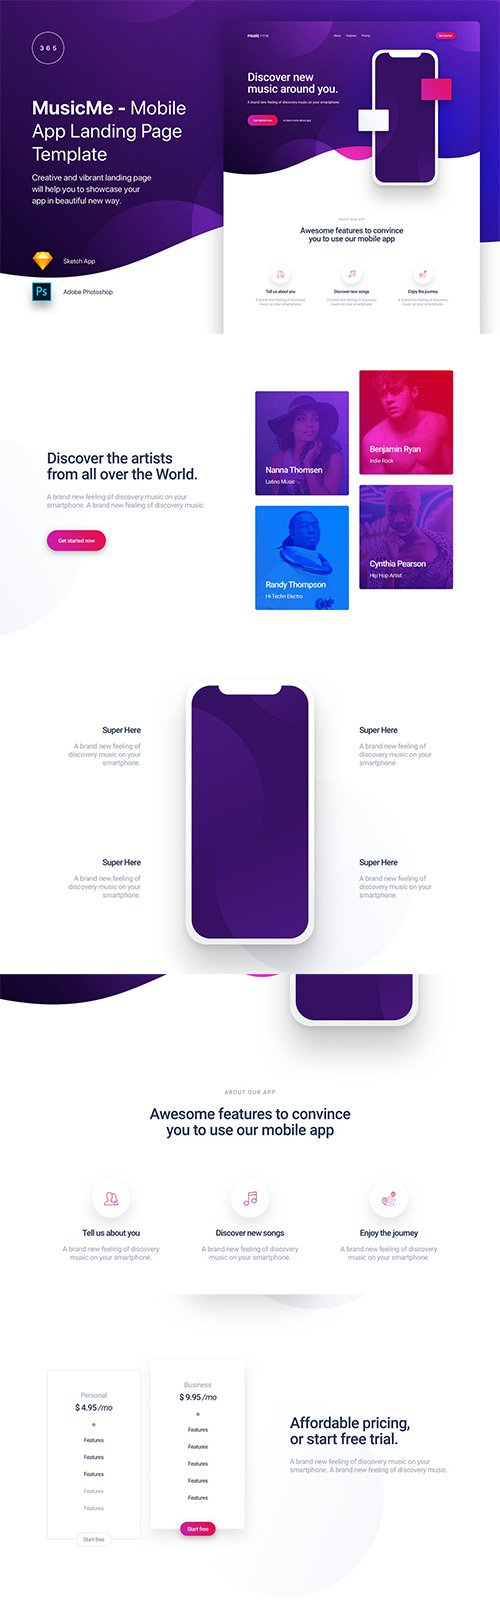 MusicMe - Mobile App Landing Page Template